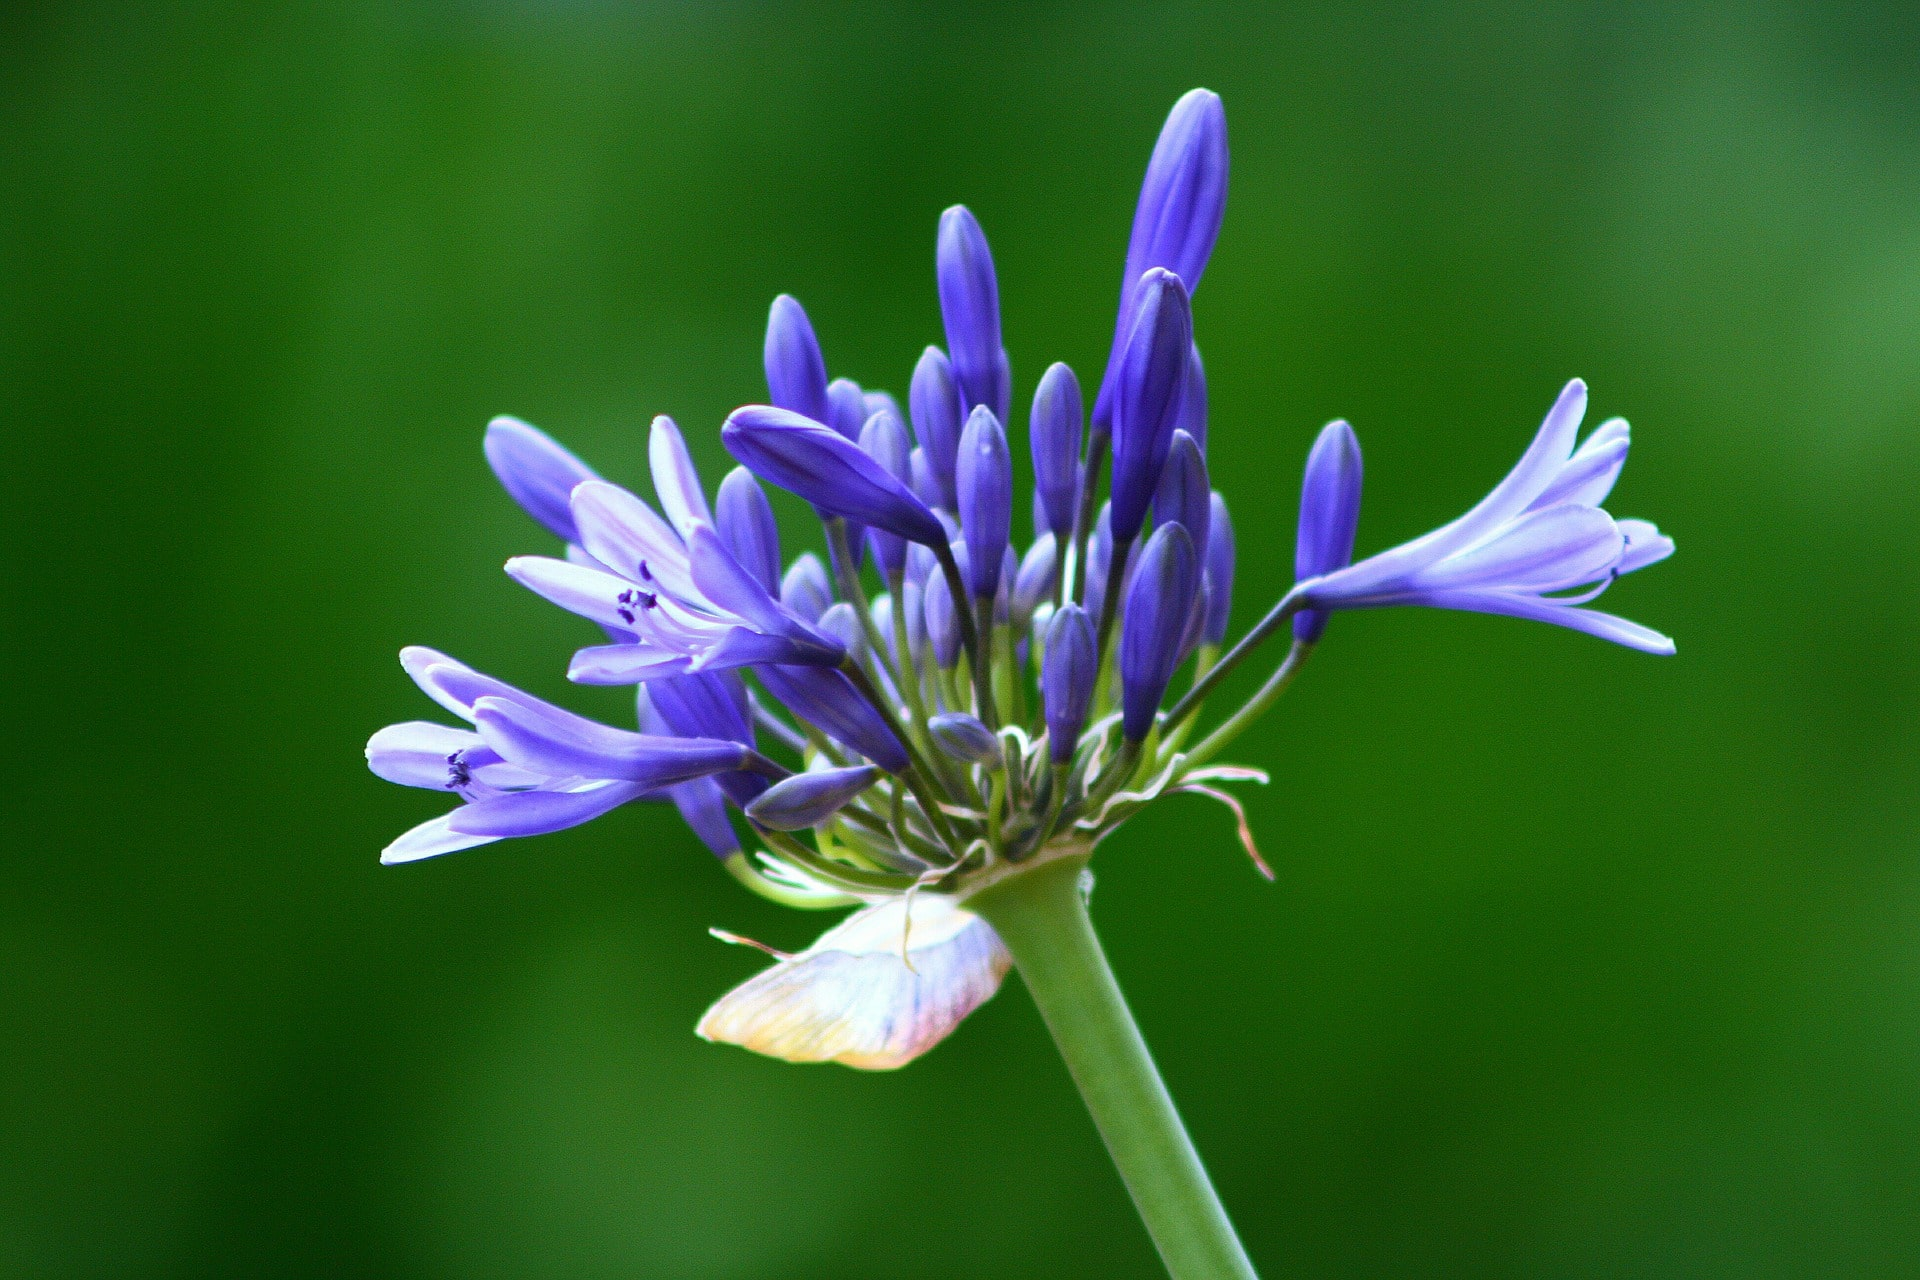 Agapanthus Plant Lily of the Nile